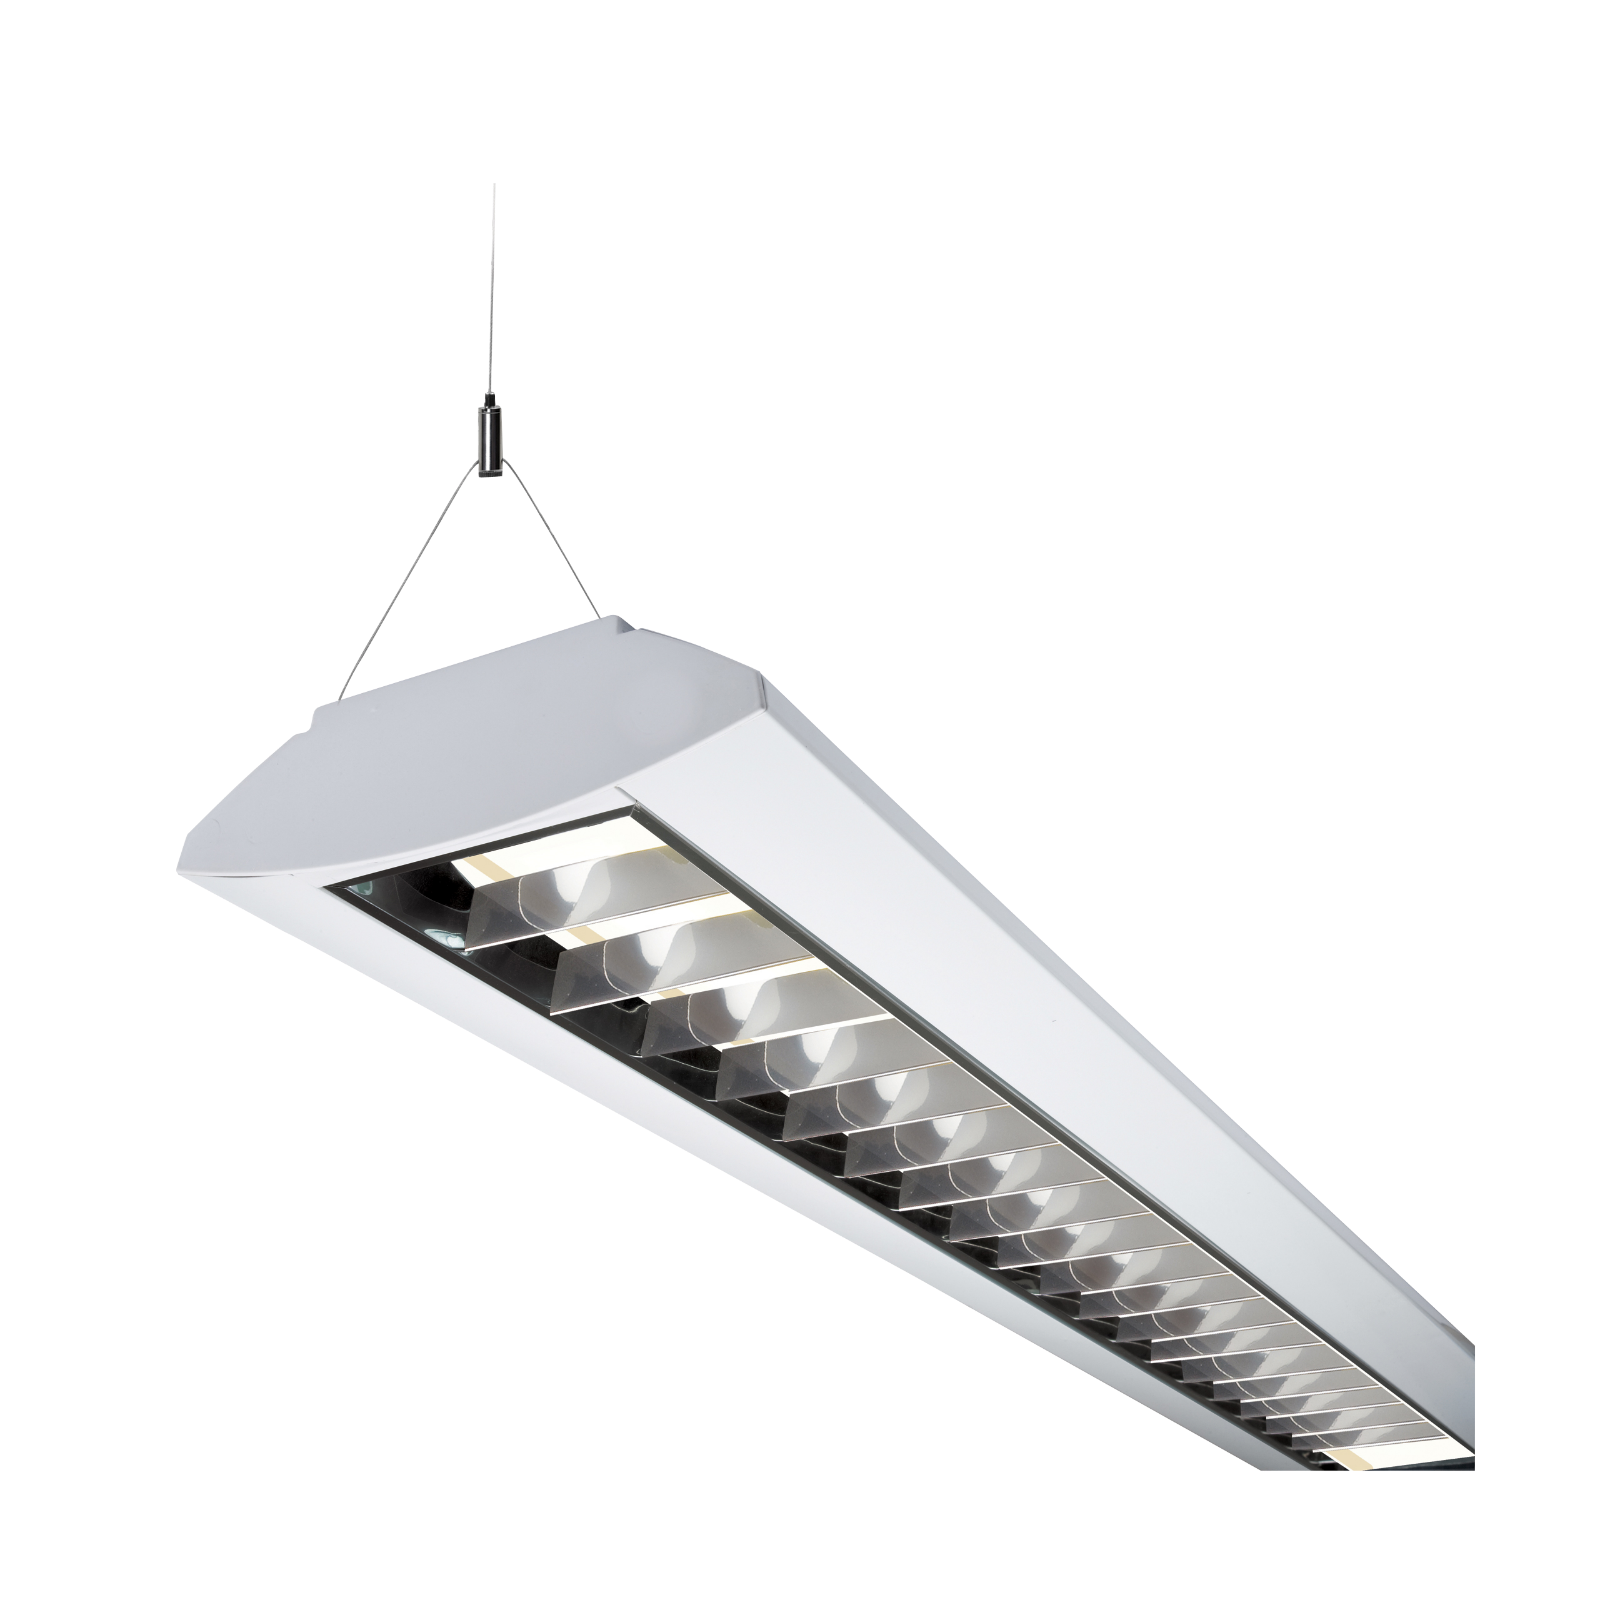 230V IP20 35W T5 Twin Fluorescent Fitting with Double Parabolic Louvre White